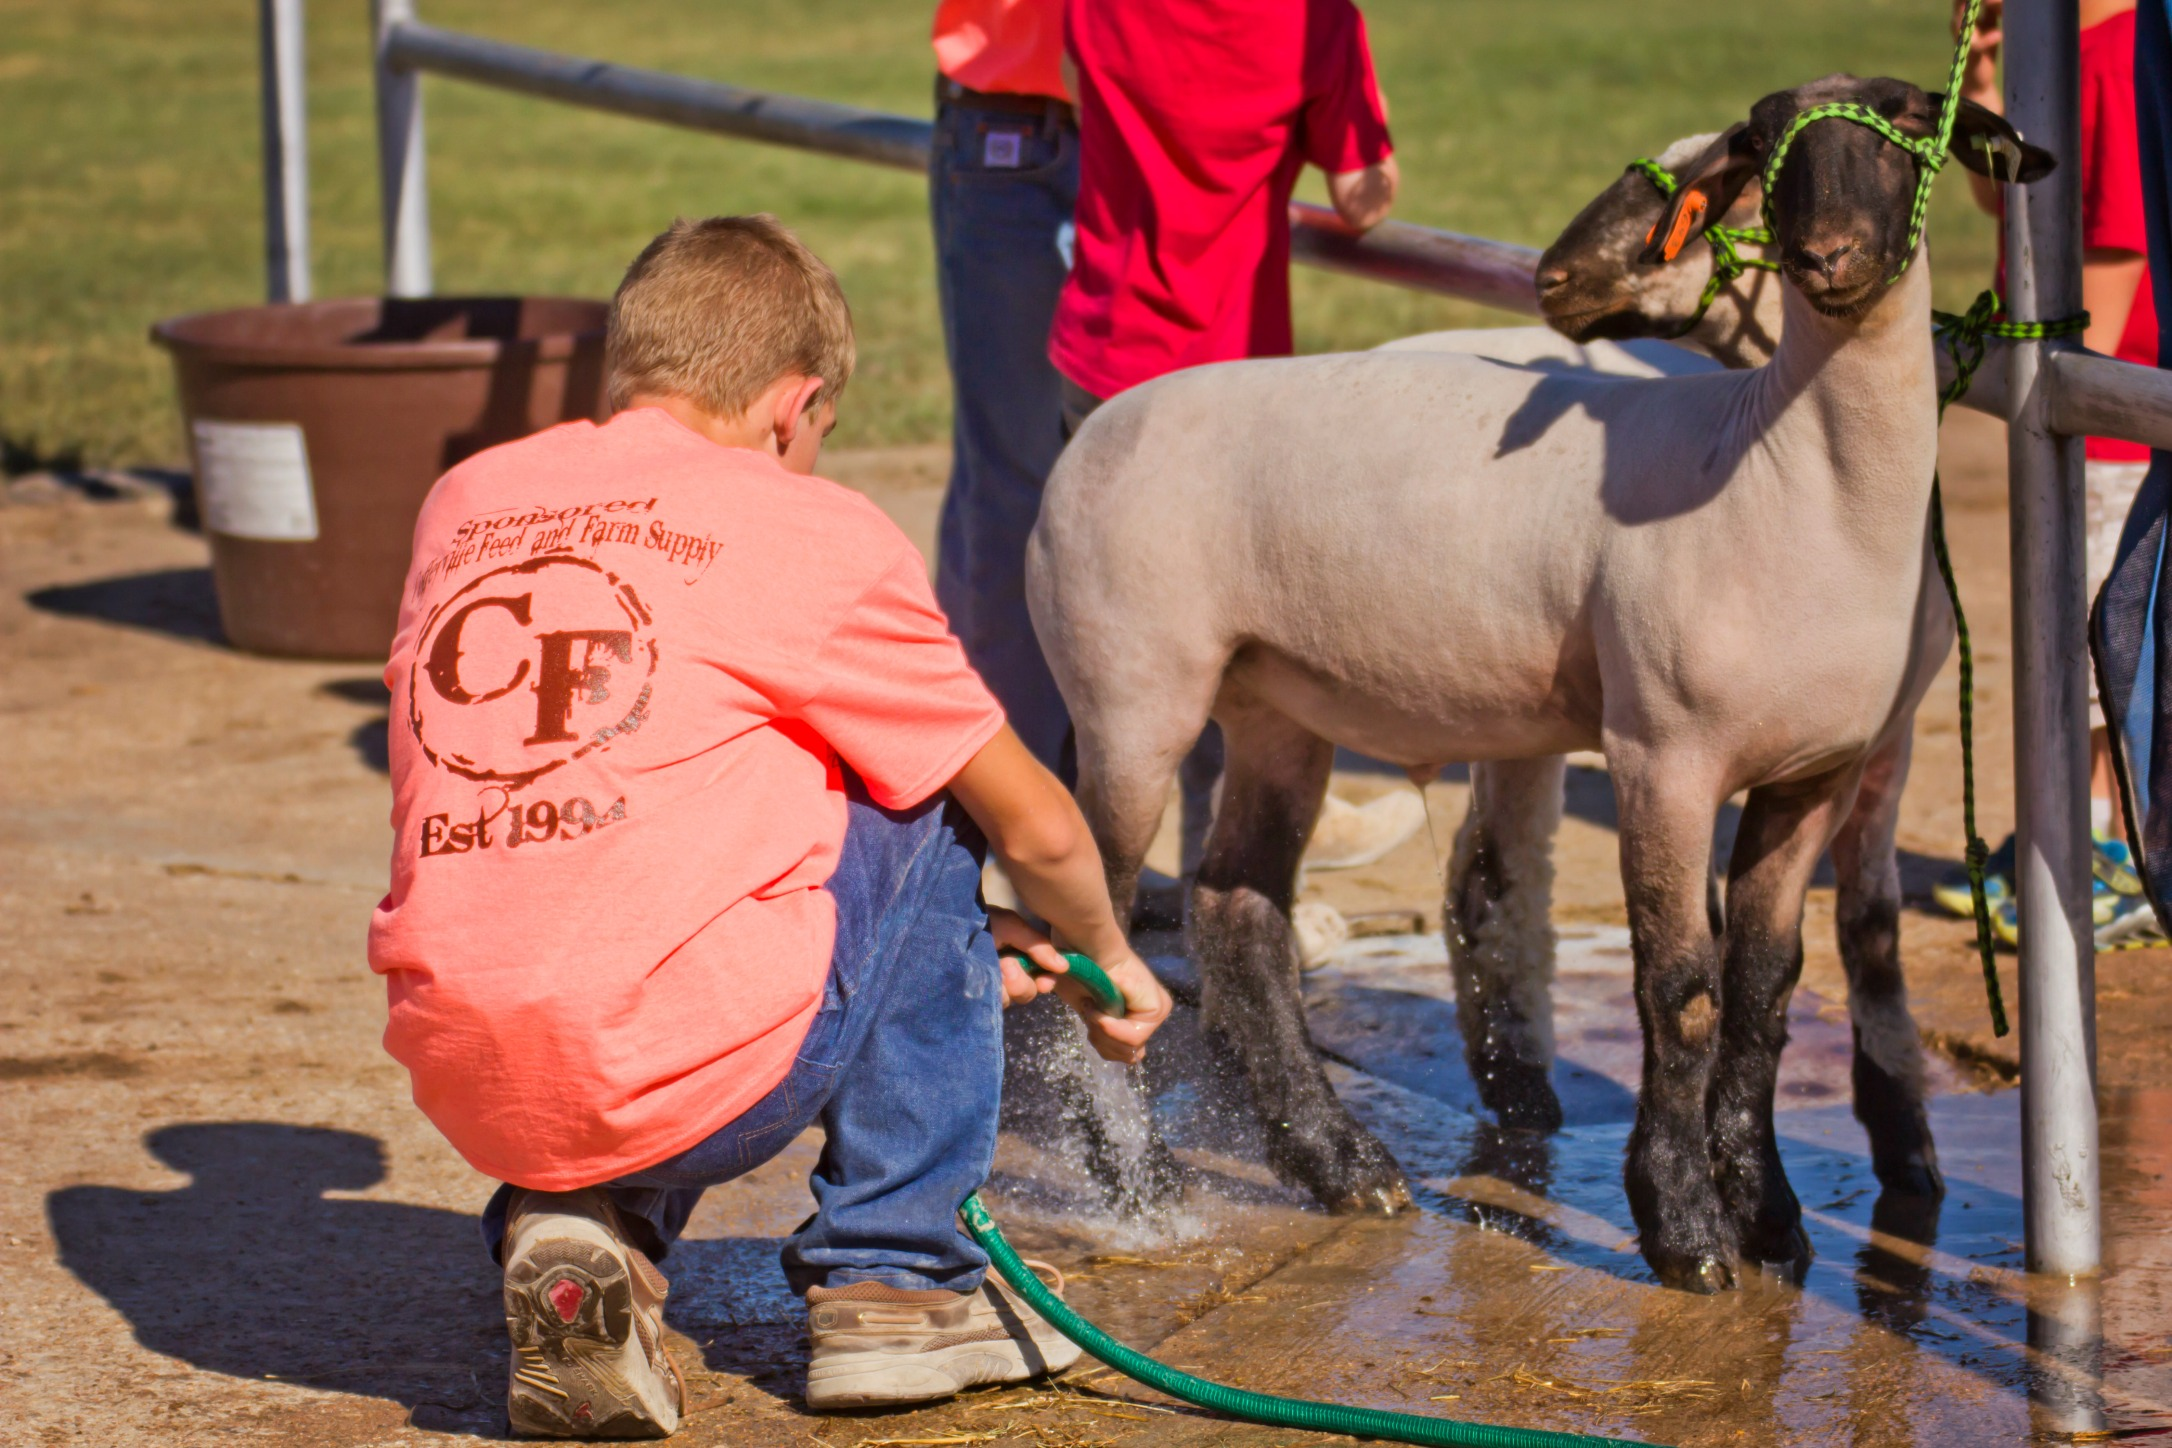 Making it better for the kids, livestock show changes benefit youth